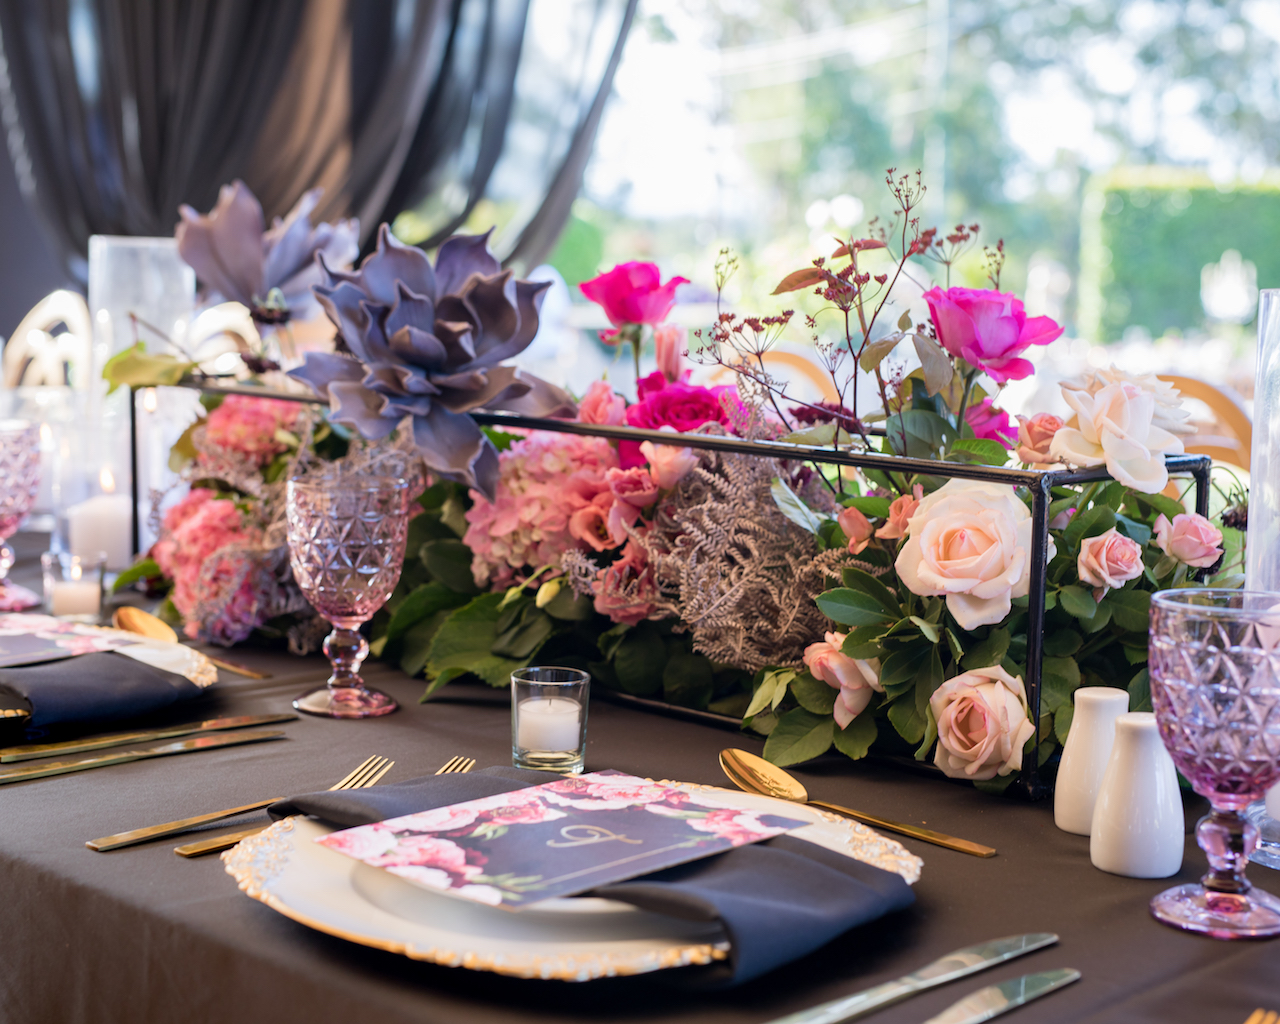 love, hope, flowers, lhflowers, wedding flowers, flowers, Sydney, Sydney florist, table centrepiece, private function, sweet 16th birthday, glenorie, pink hydrangeas, stylist, table centrepiece, dinner party